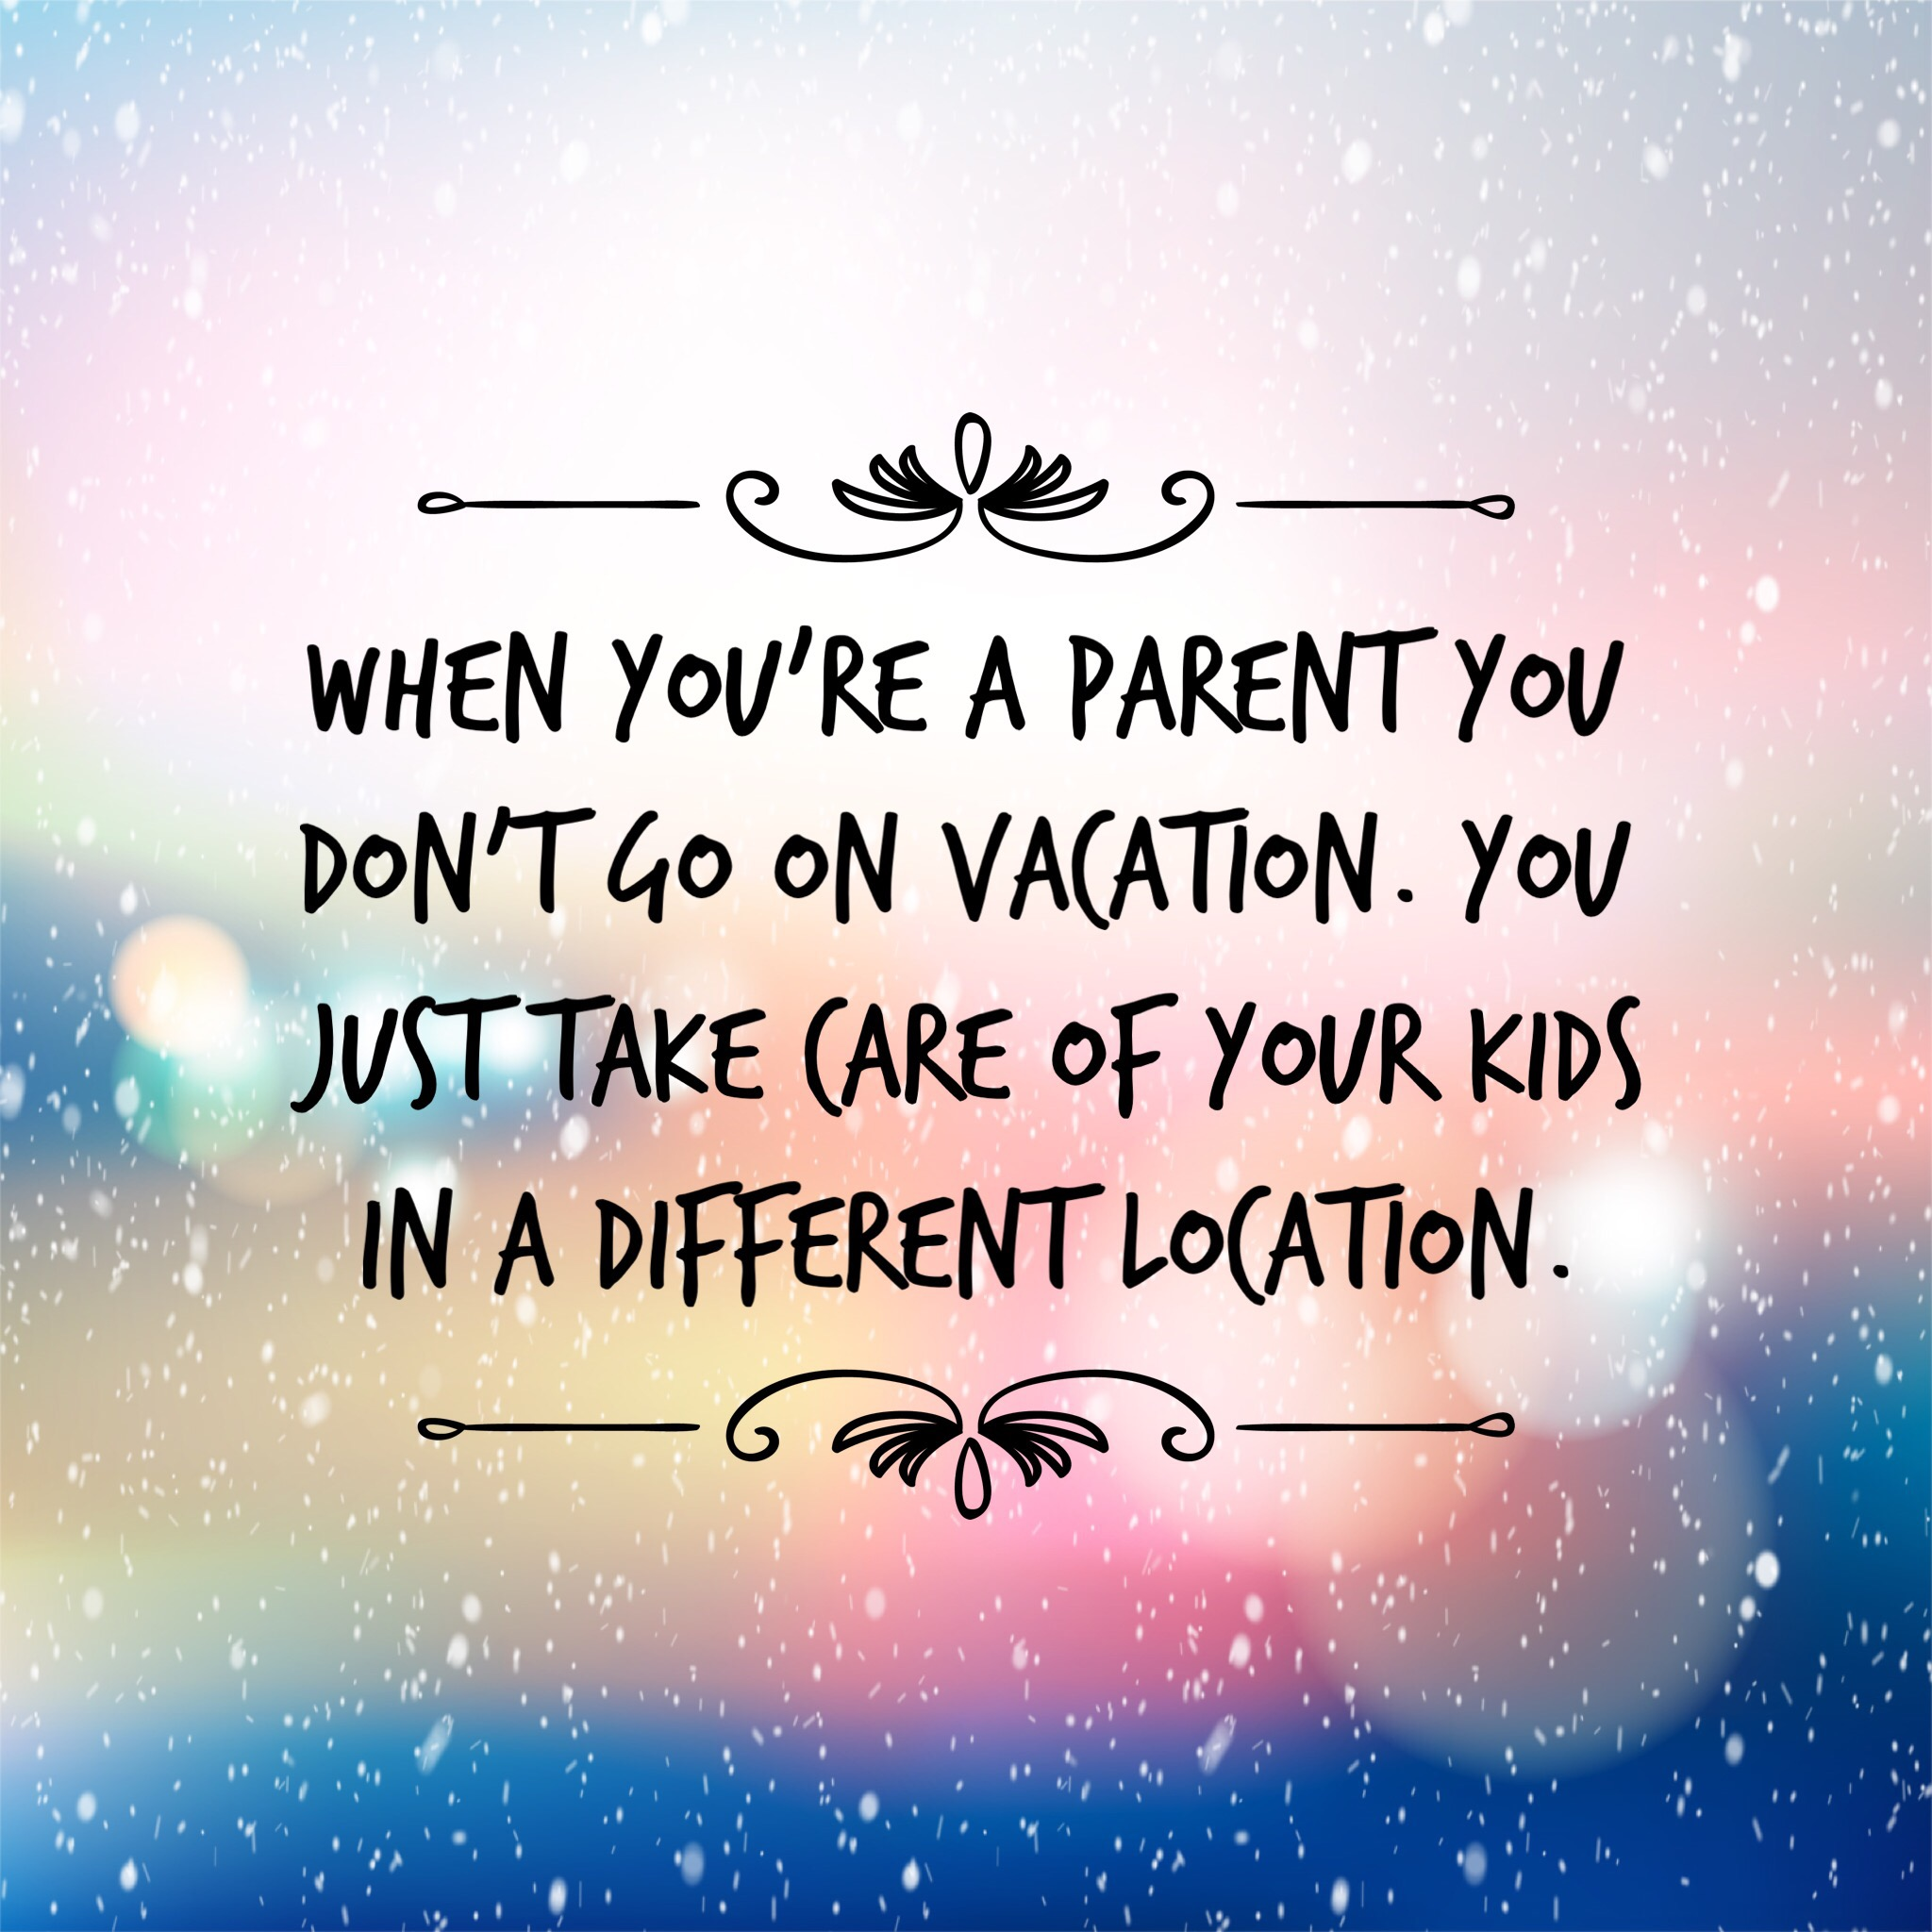 When you're a parent you don't go on vacation. You just take care of your kids in a different location.